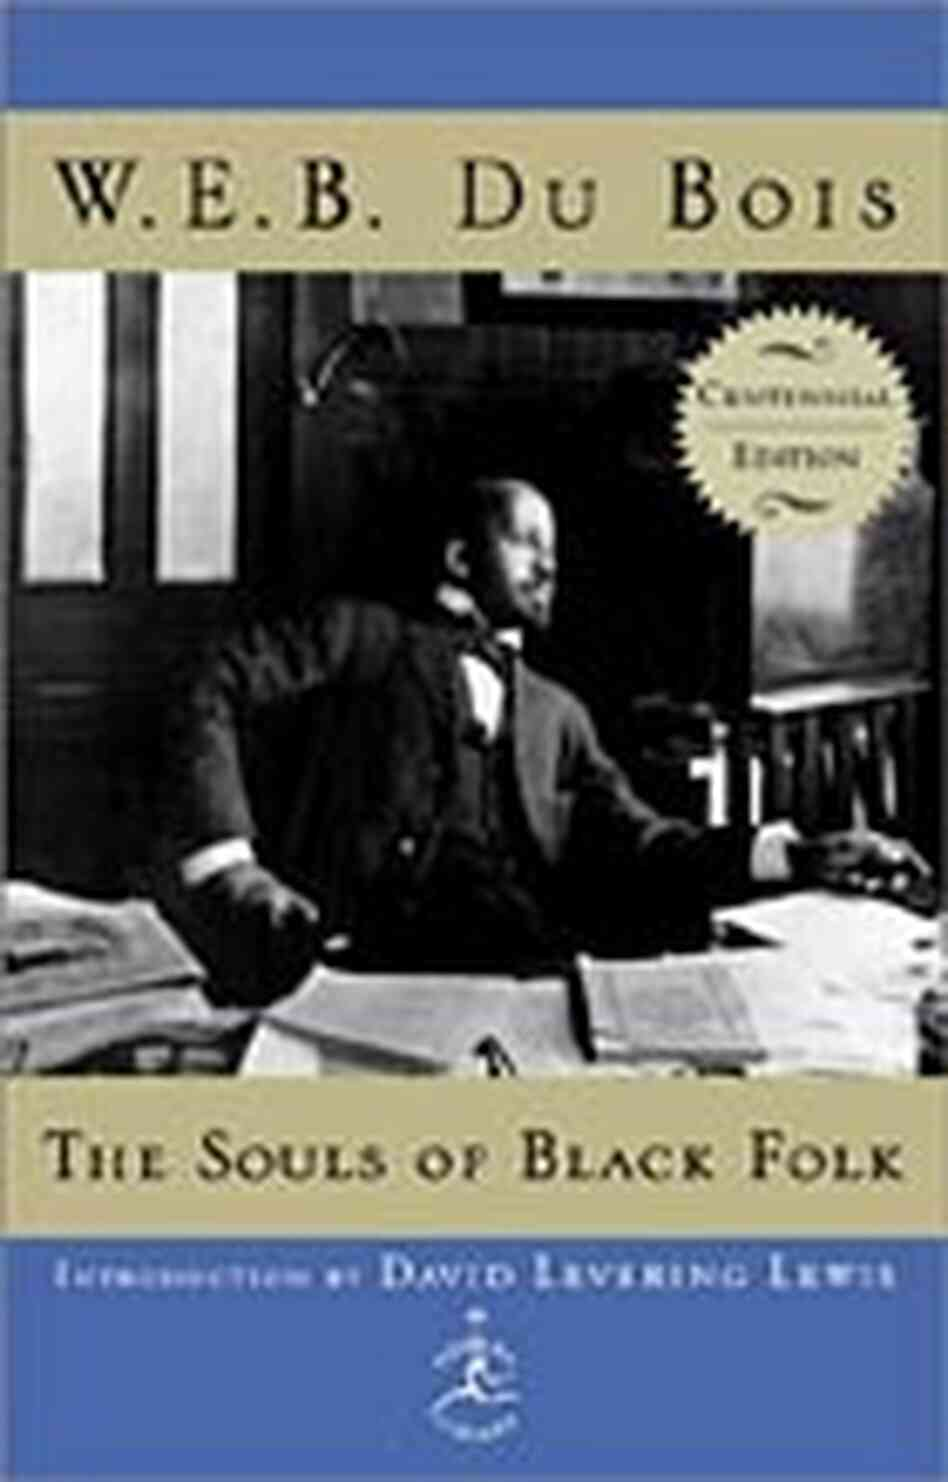 essay on of our spiritual strivings In of our spiritual strivings, the two main messages that web dubois has to share are of the dangers of double-consciousness and the idea that a veil exists between white america and african america.